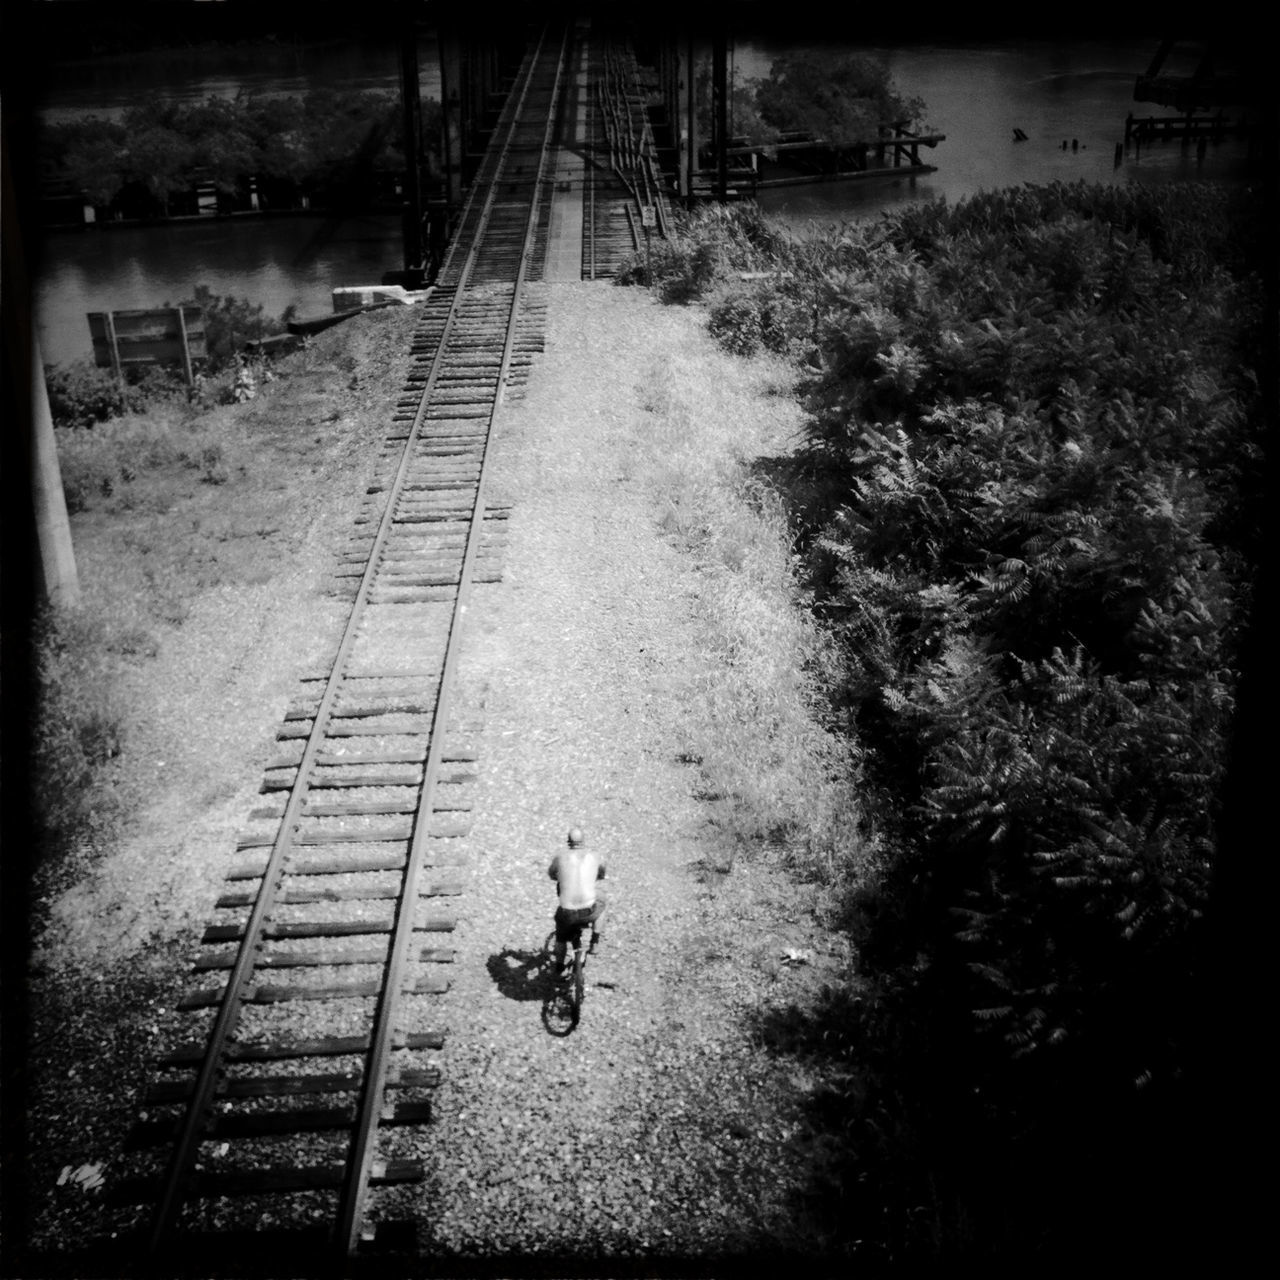 High angle view of shirtless man cycling by railroad tracks